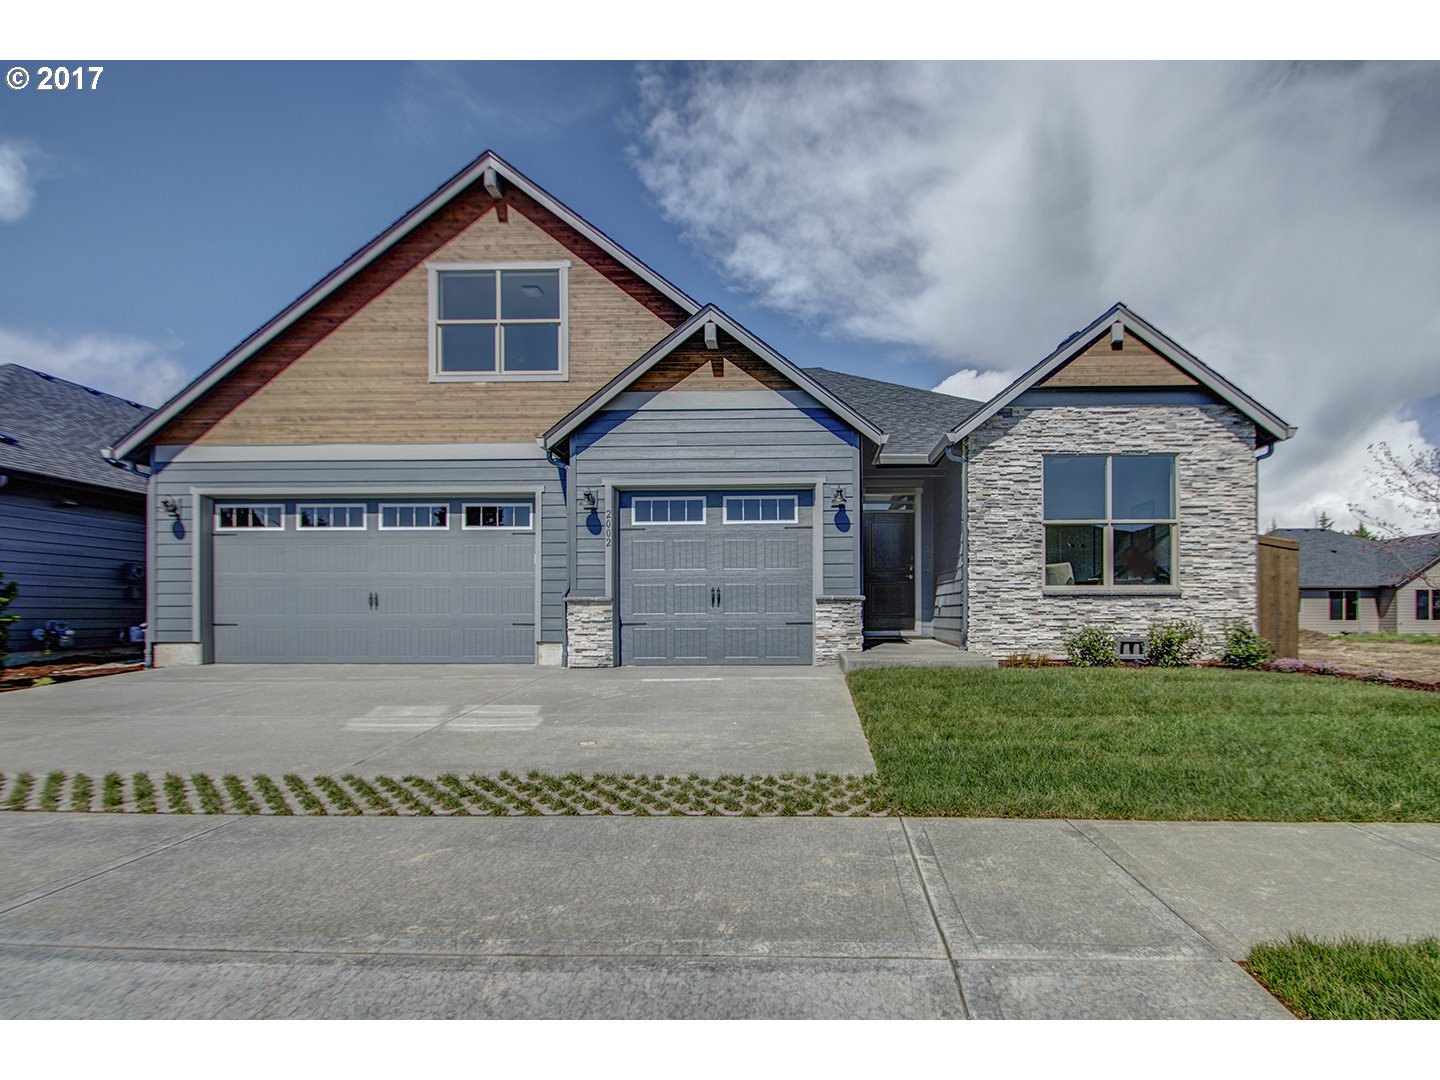 2002 NW 117th WAY, Vancouver, WA 98685